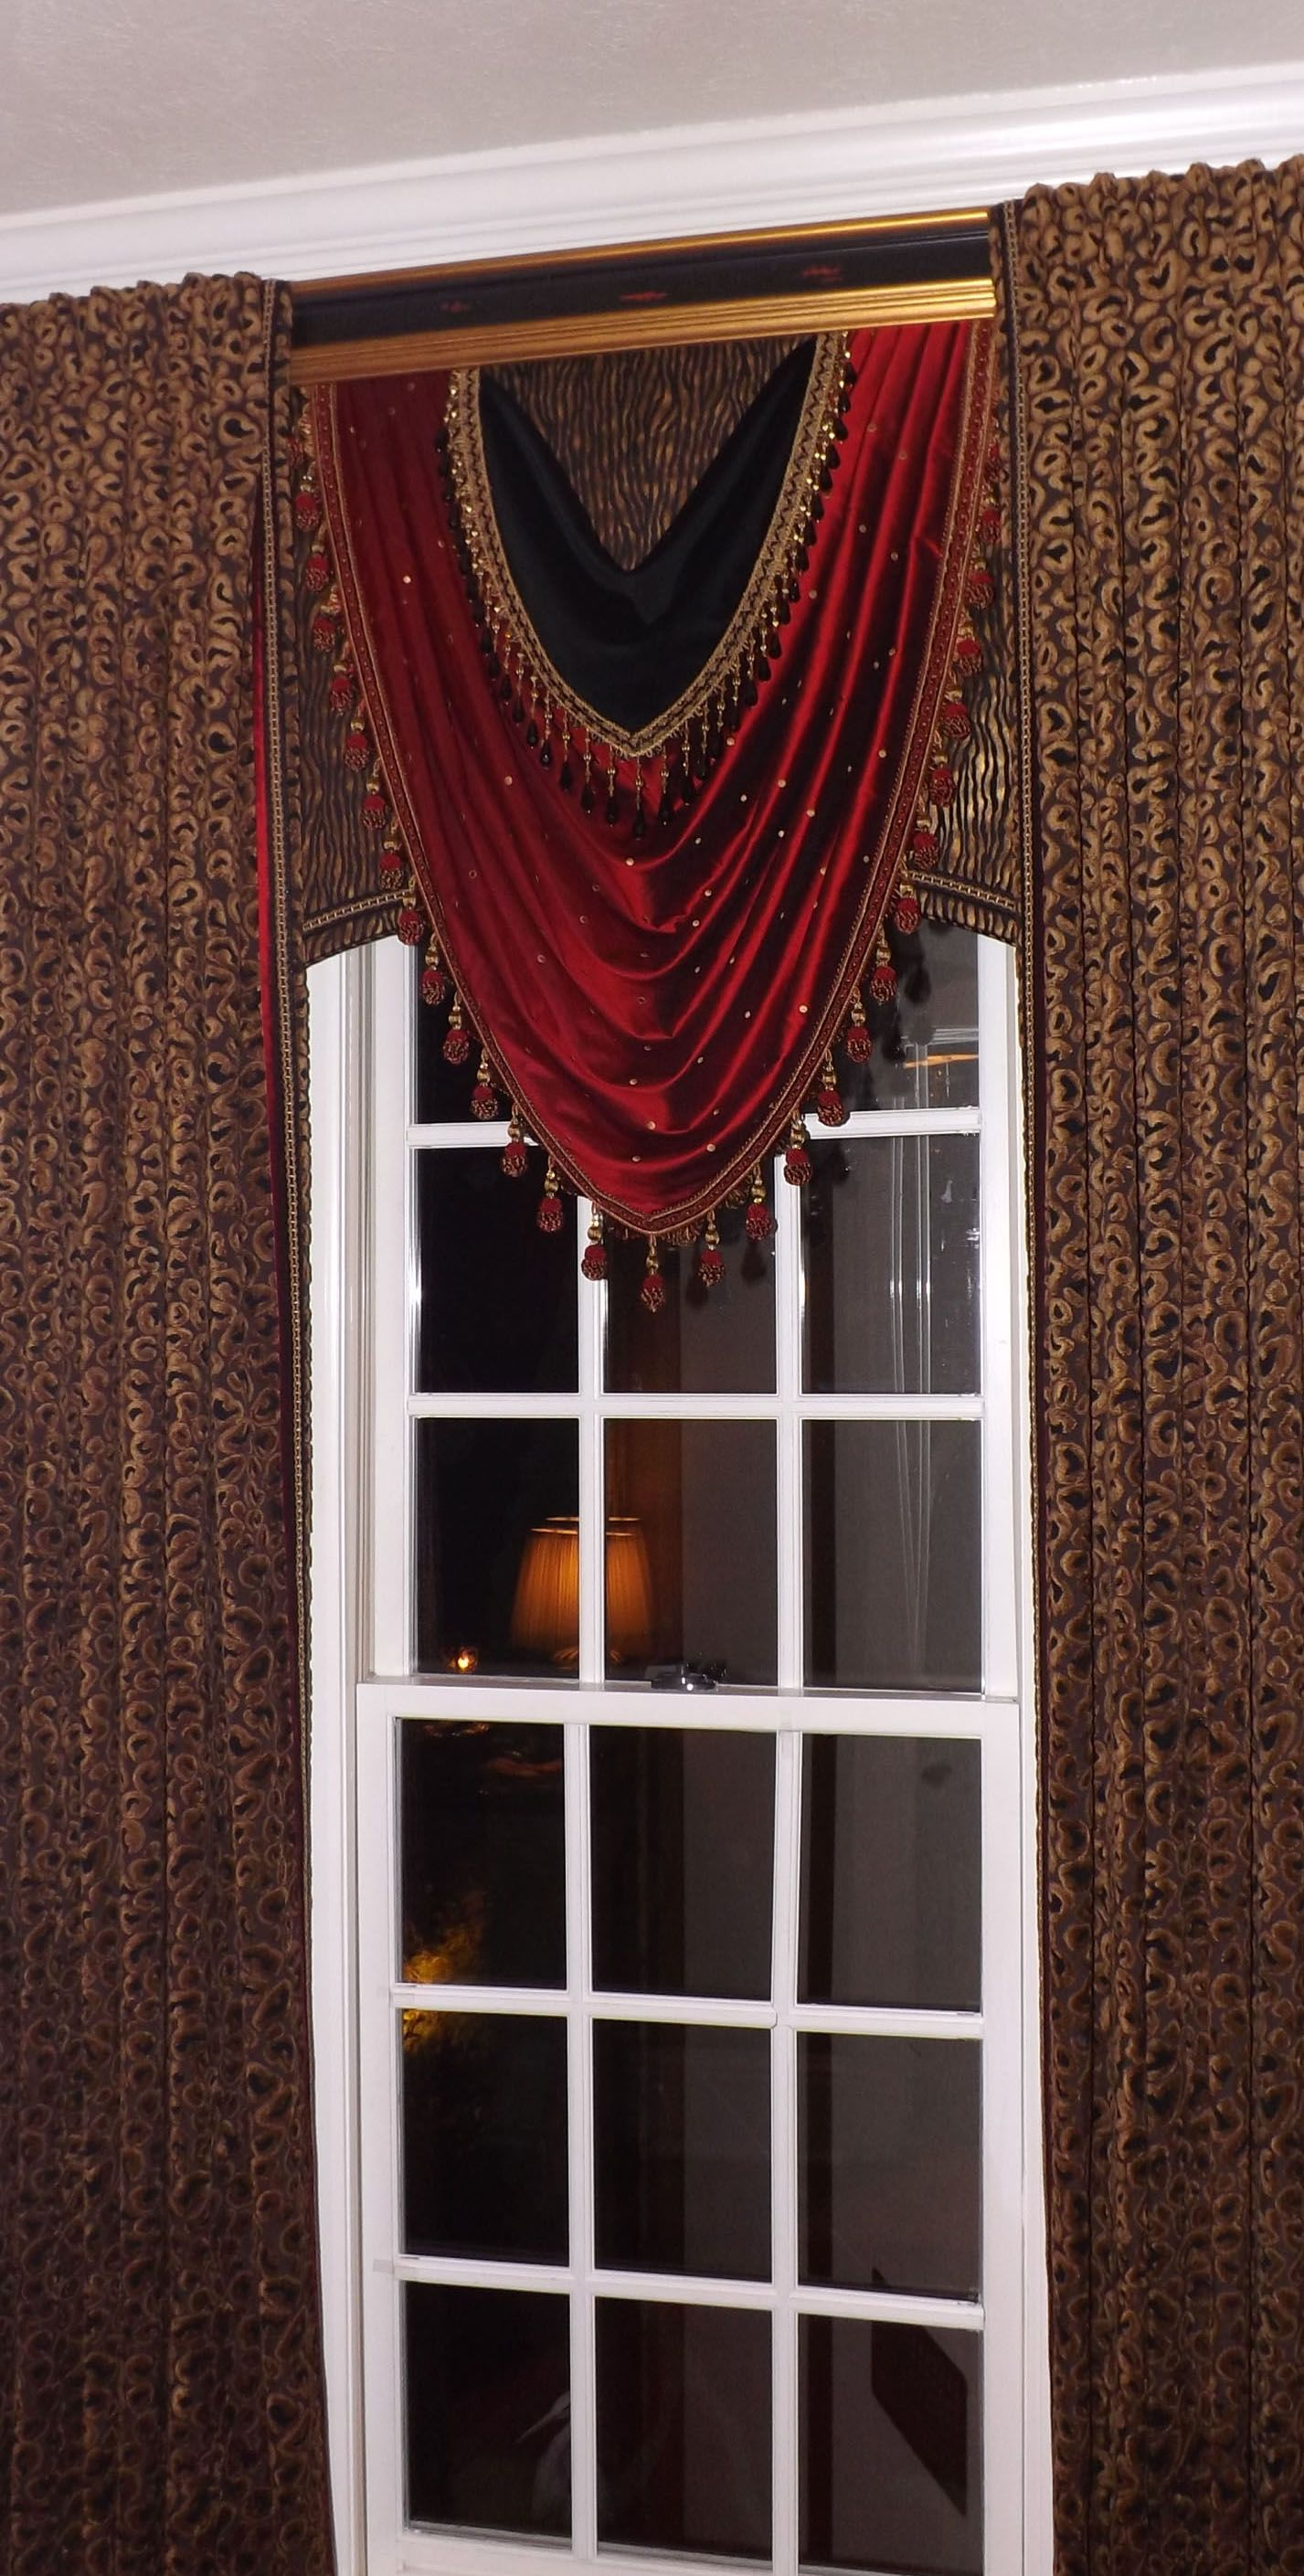 home miraculous to intended cheap of decor x wooden unique l size hardware pull custom traverse curtains regard full the sizing decorative bracket rod double rods string rings design curtain drapes shaped drawstring triple for with your drapery houses